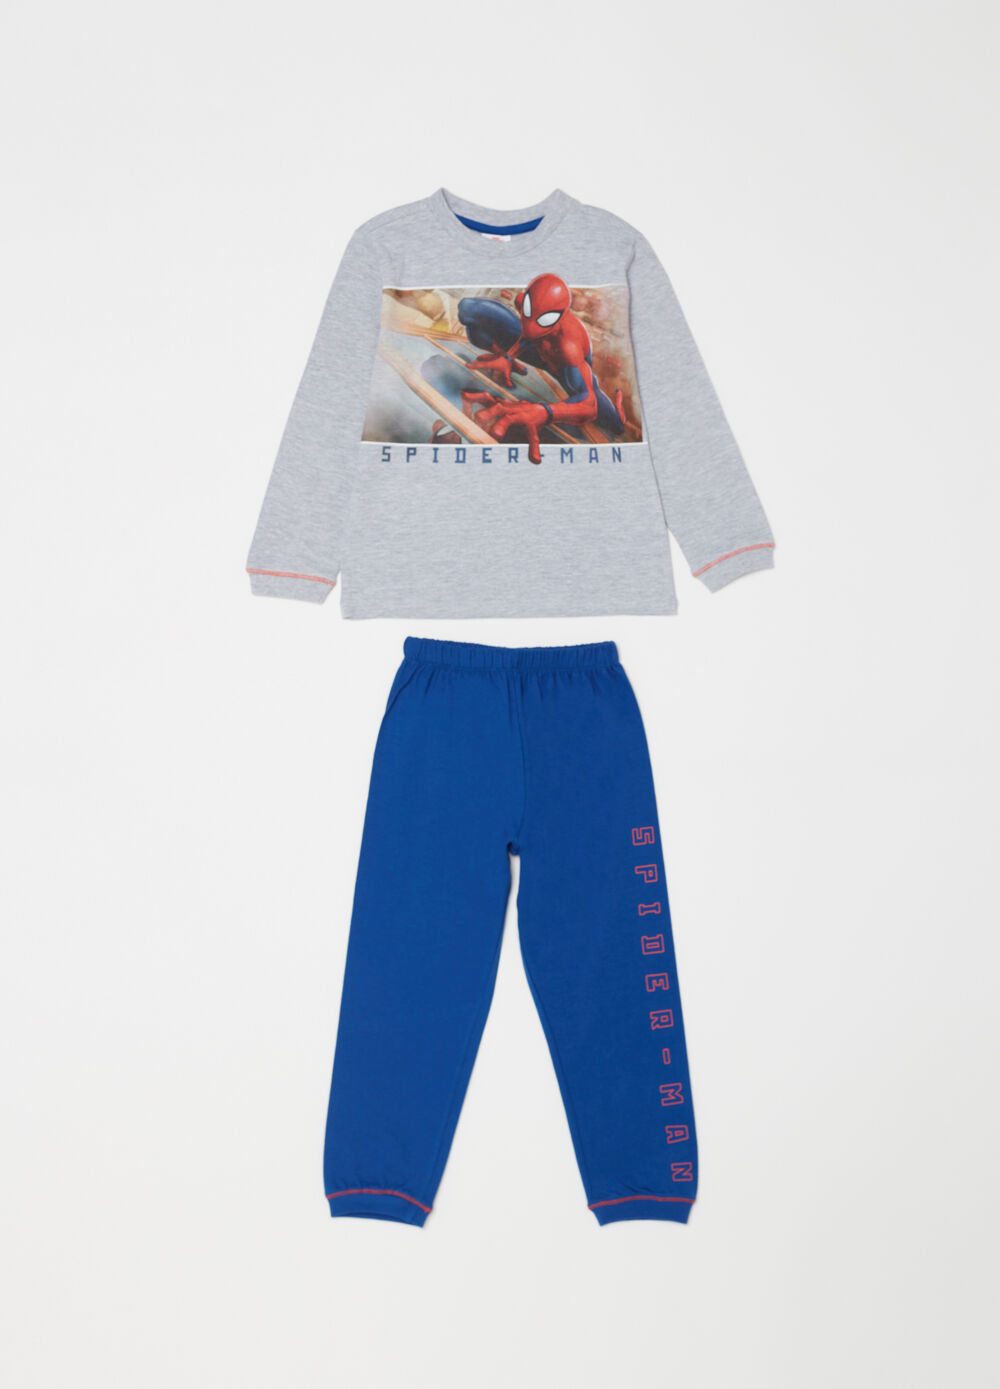 Marvel Spider-Man full-length pyjamas in lightweight cotton